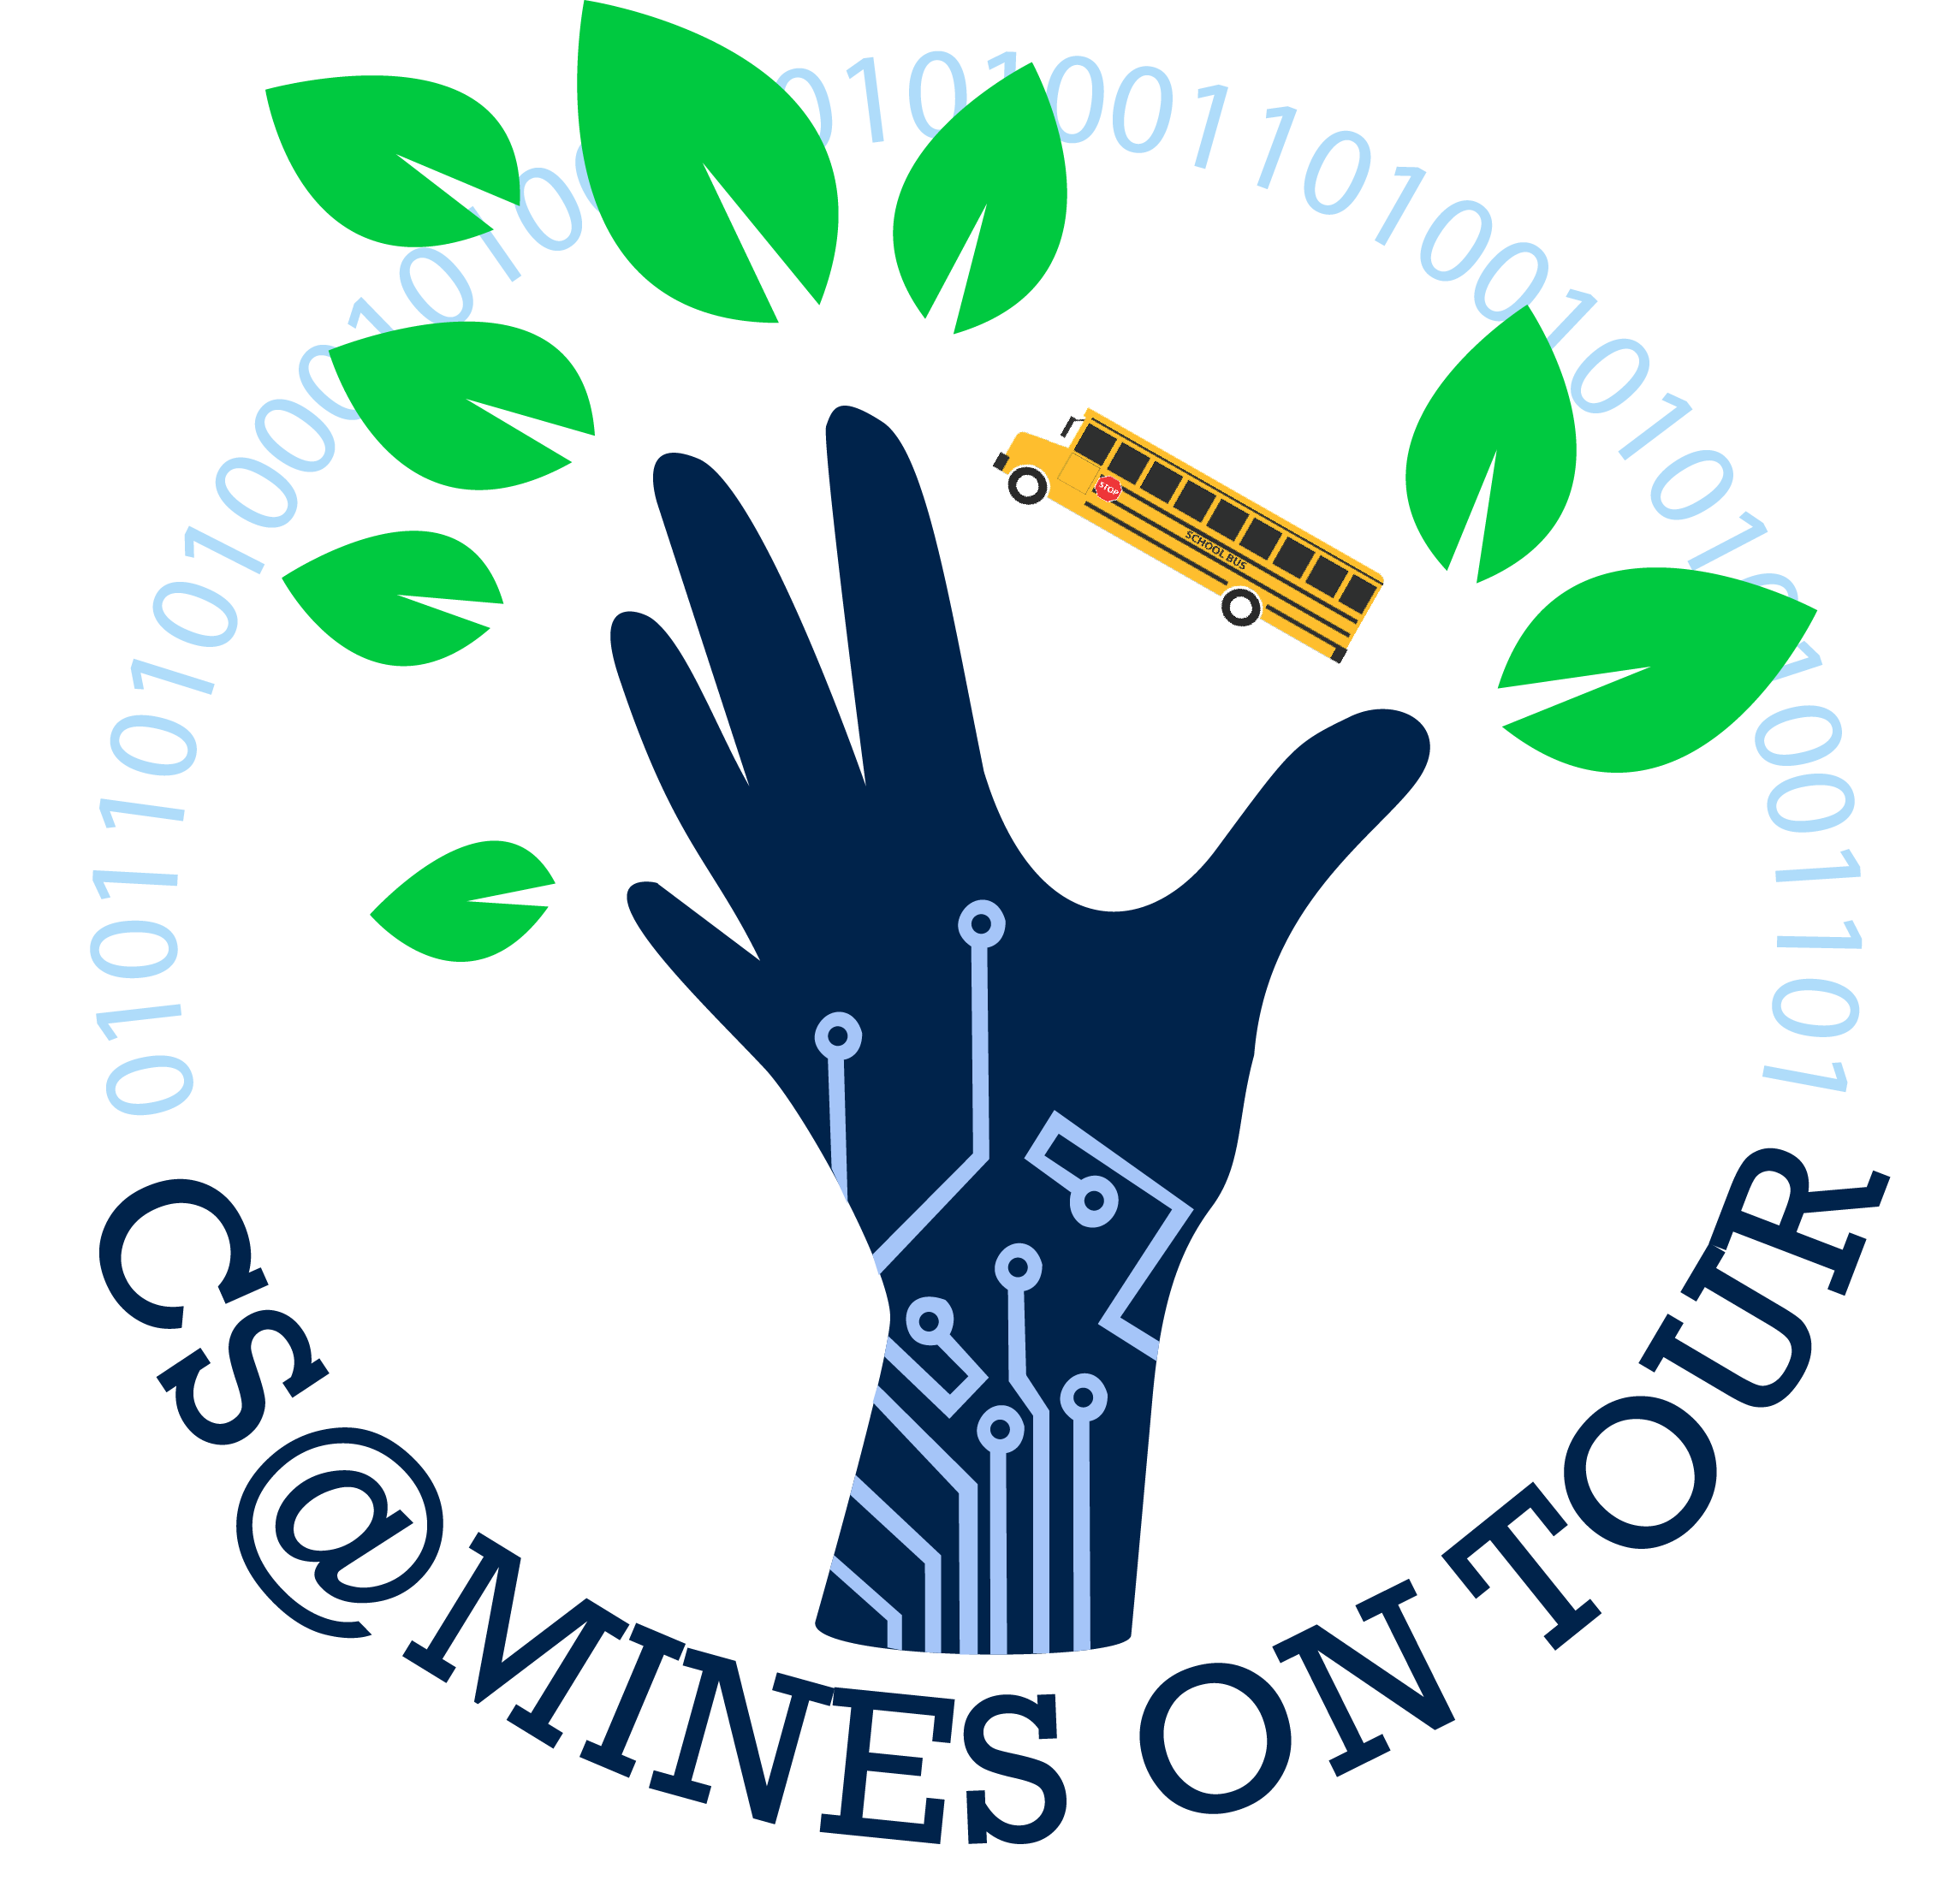 Picture of CS@Mines On Tour Logo